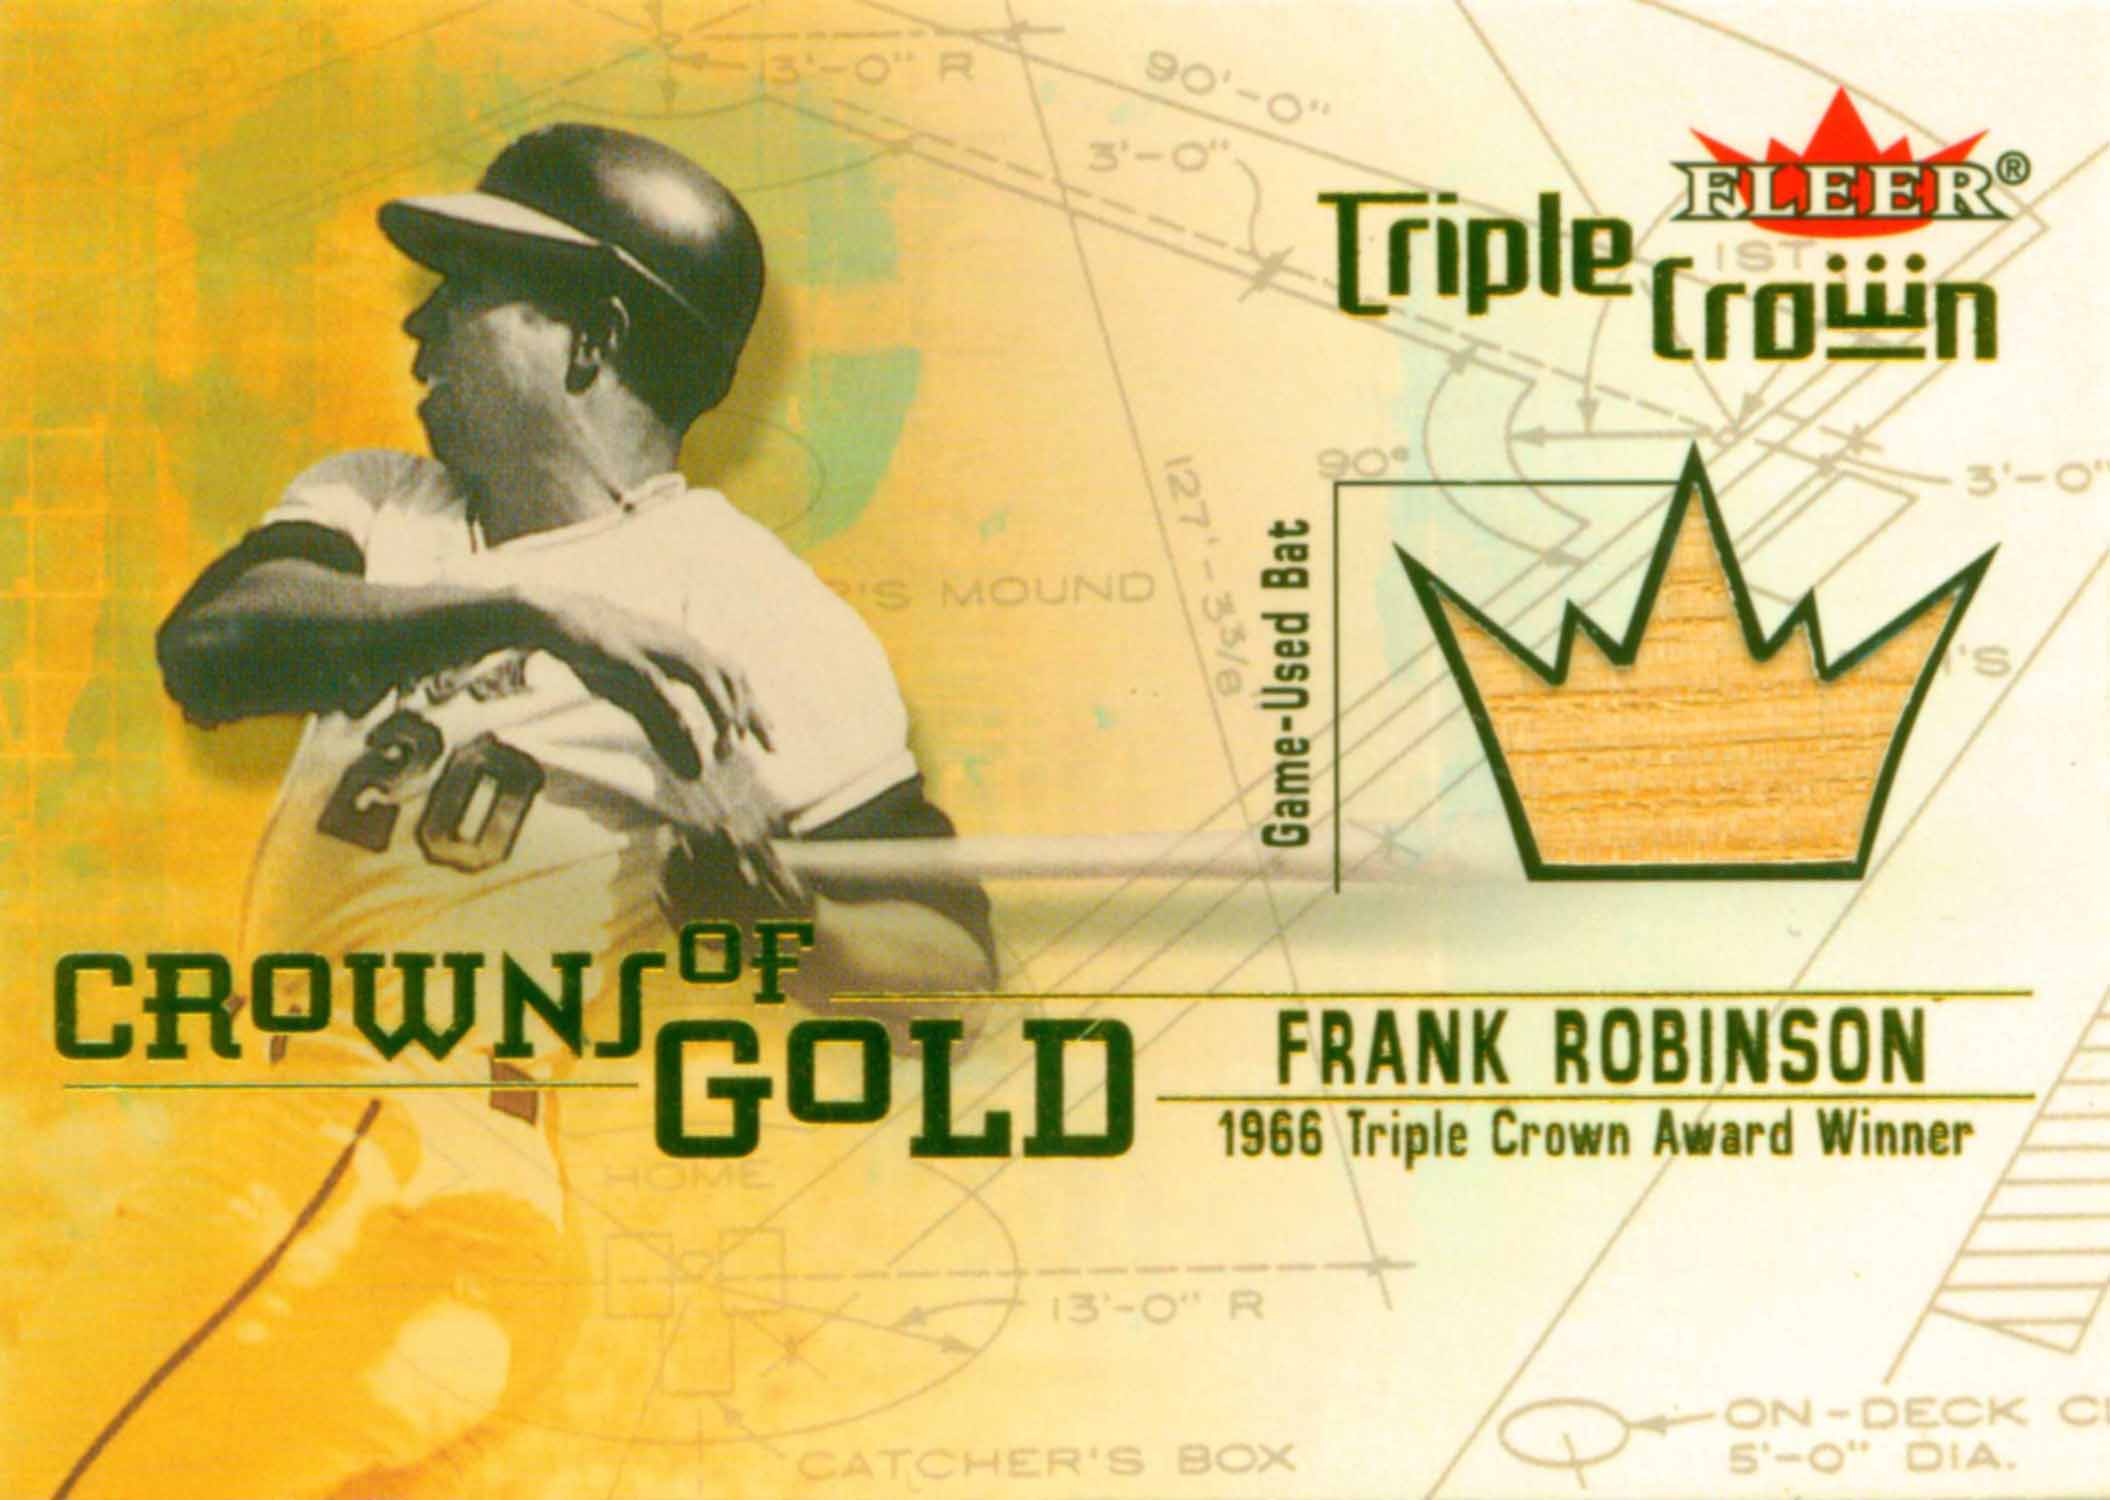 2001 Fleer Triple Crown Crowns of Gold Memorabilia Bat